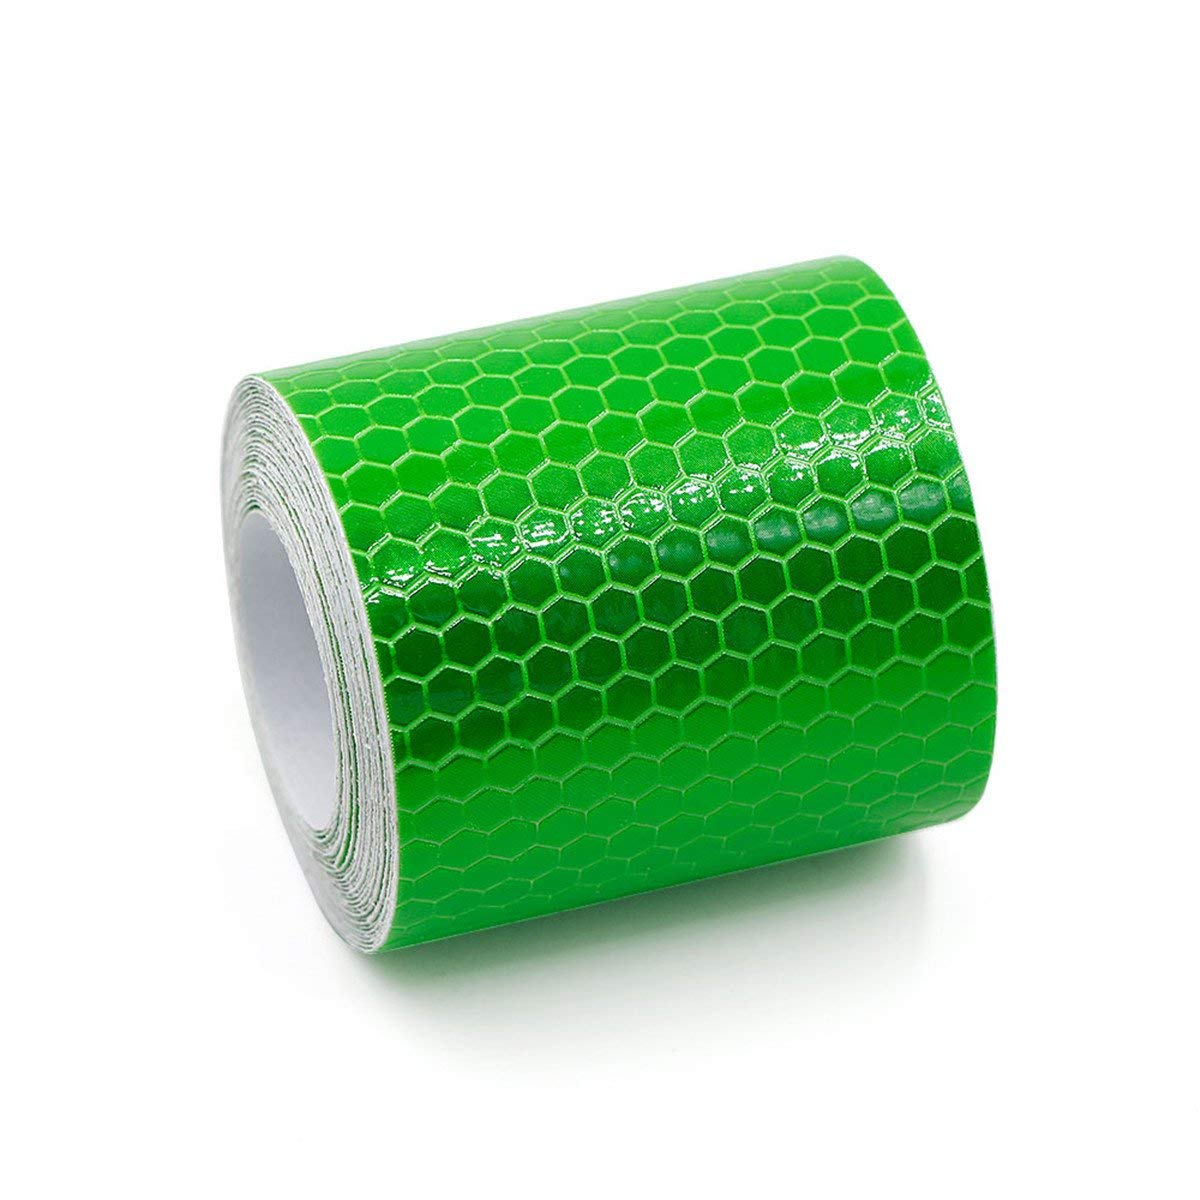 Queenbox Reflective Tape for Auto Motorcycle Safety ReflectiveTape Material Film Warning Tape Car Styling